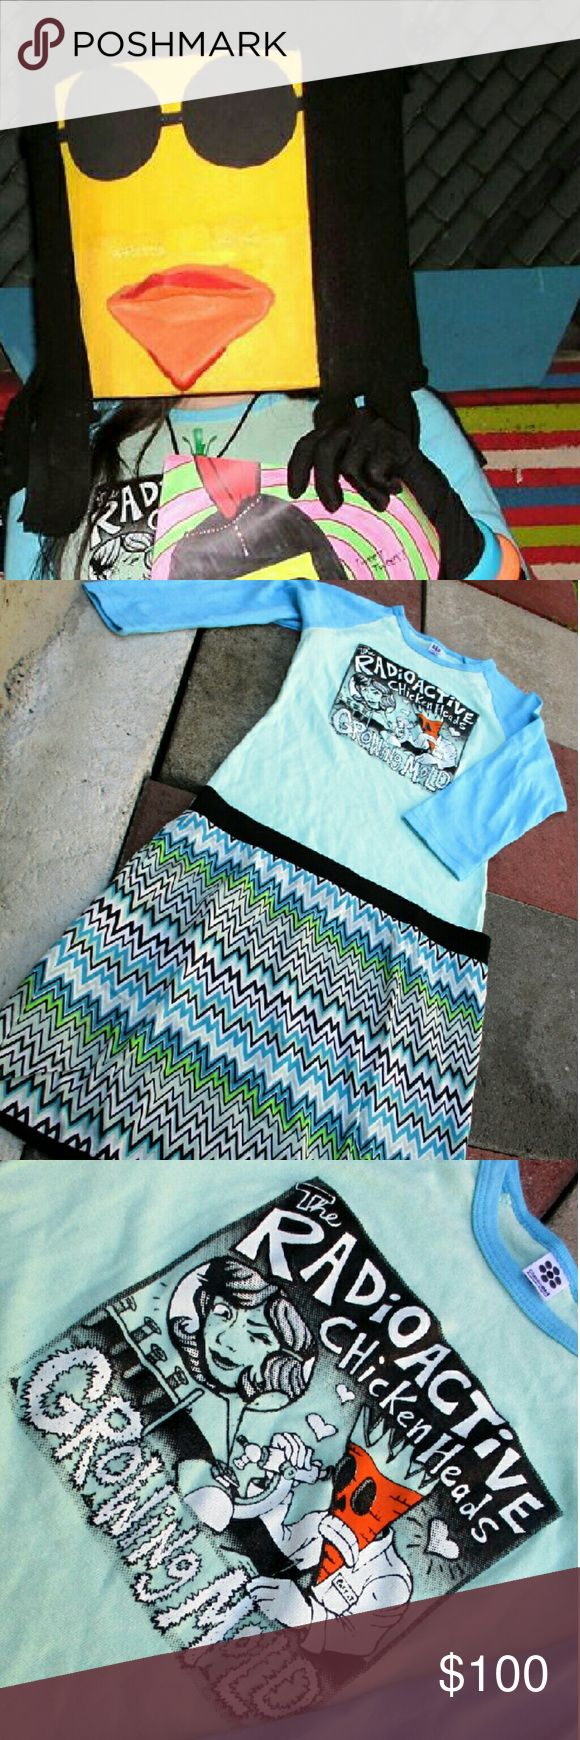 "Rockin Robin's Rare Outfit  Top & Skirt Rare outfit worn for my performance with the Radioactive Chicken Head's ""Church Of Fun"" show. Rare Top! Accessories not included. Fits size Medium. Pre-owned. Other"